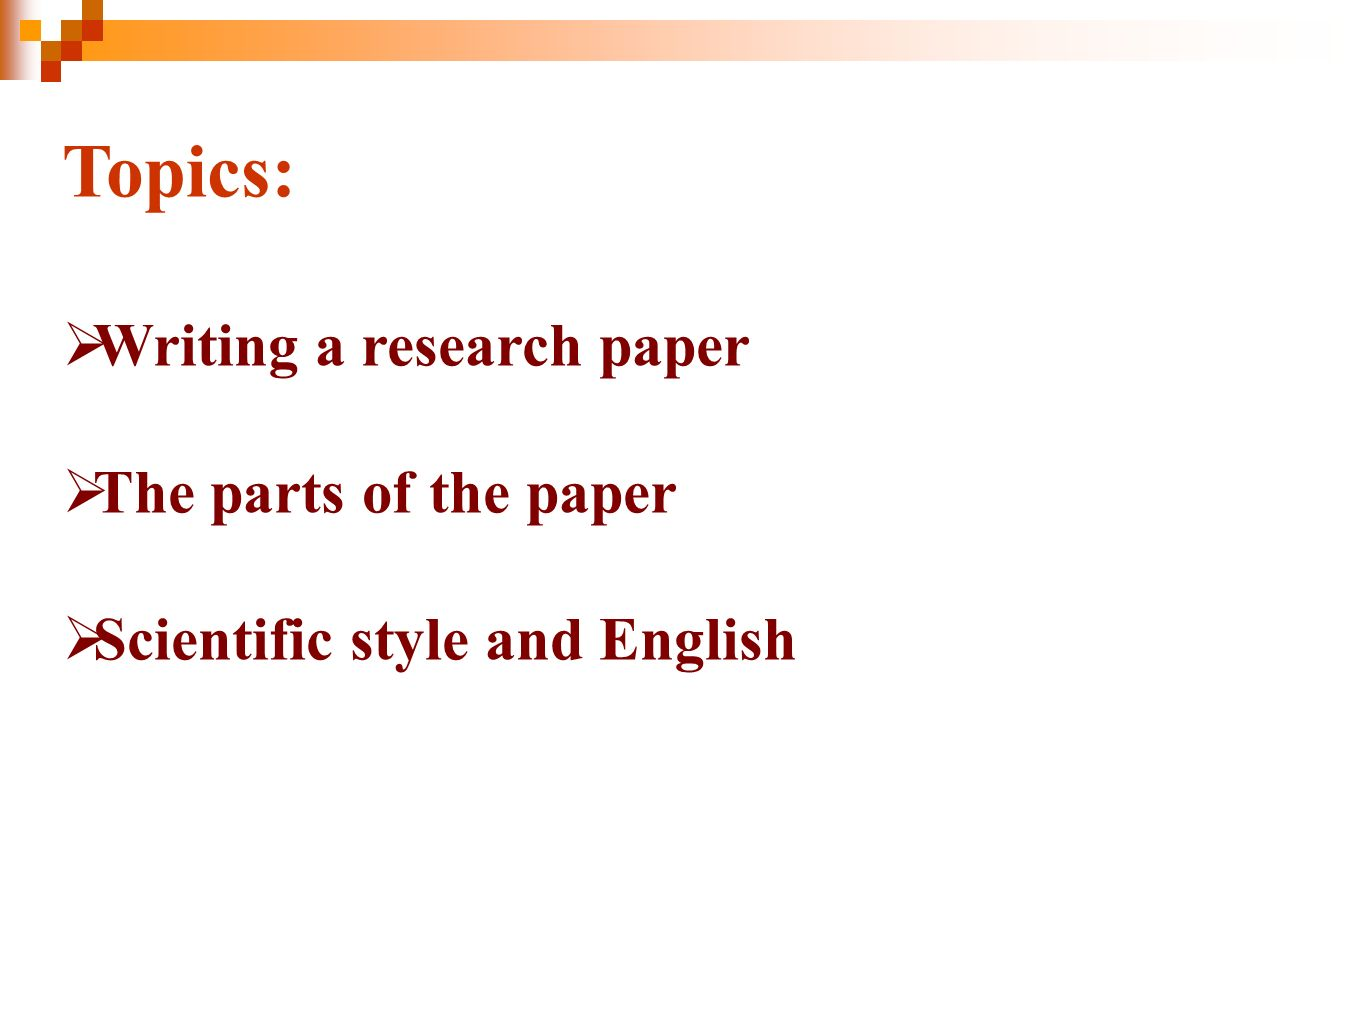 poli sci research paper The last and the most important thing in the research paper on poli sci is the roadmap to the rest of the research paper, you will have to guide the reader step by step research process, like what should a reader expect from section one then two, three and so on.